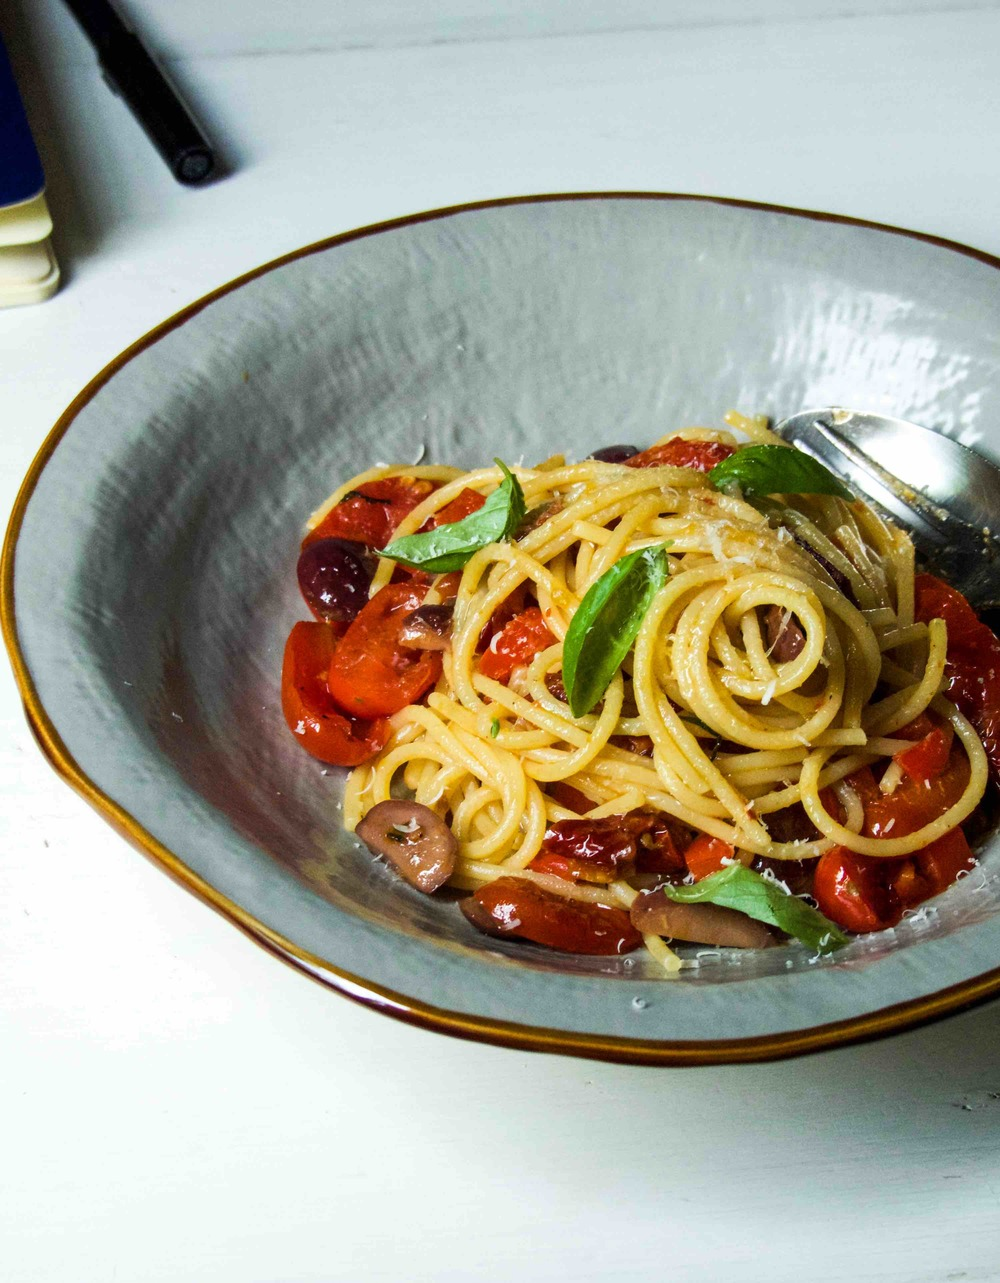 Spicy spaghetti with cherry + sun-dried tomatoes and olives